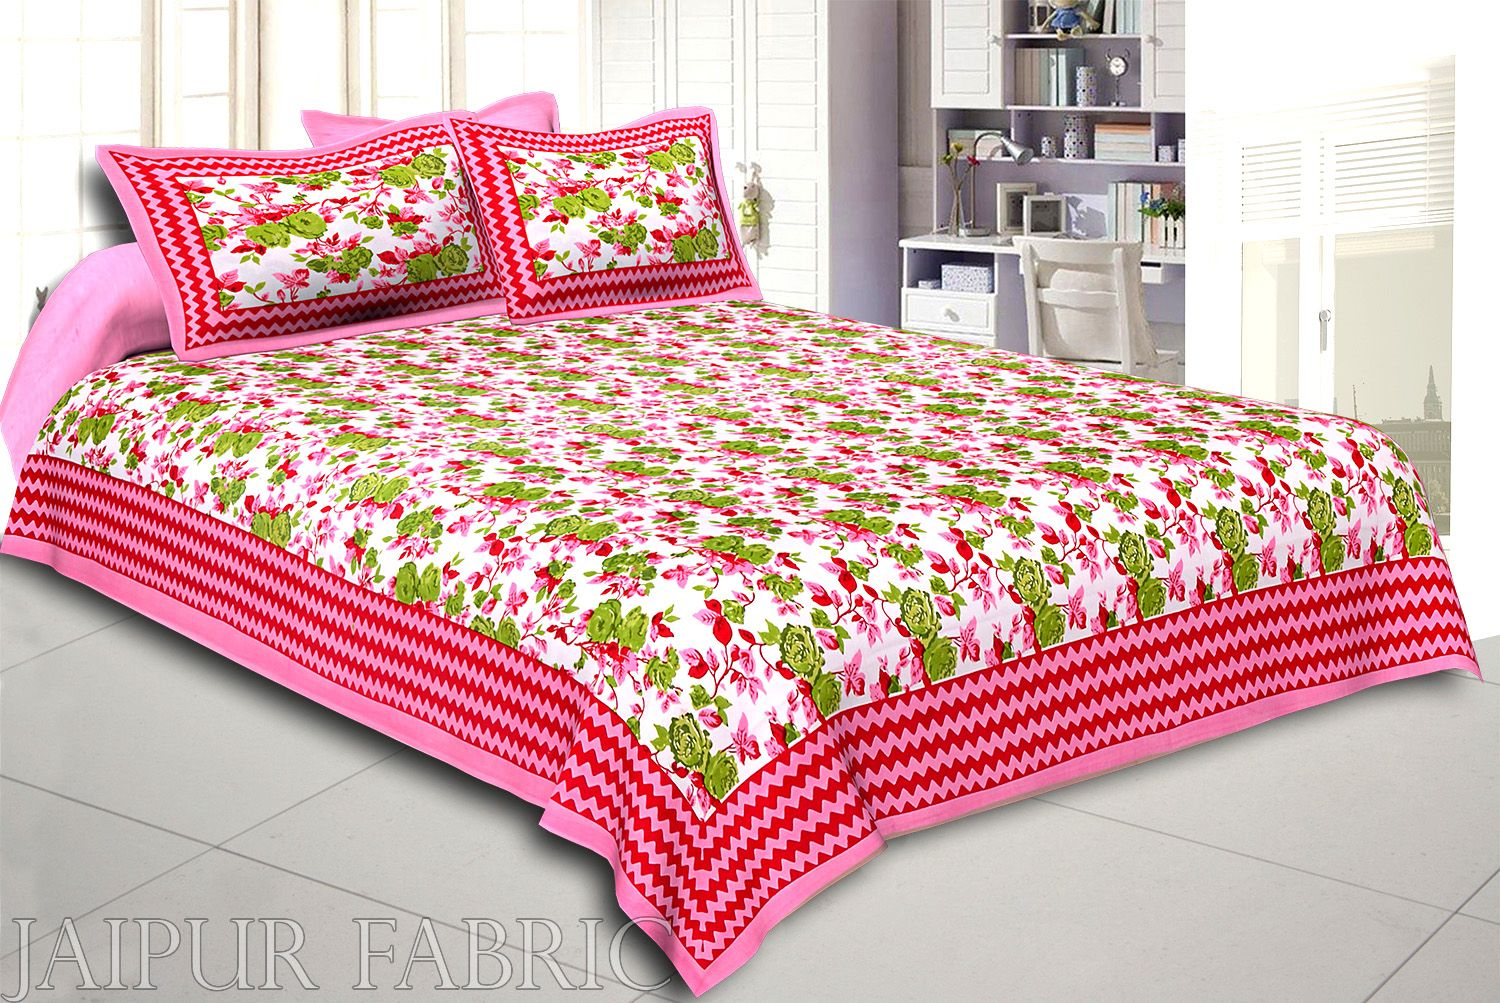 Pink Wavy Border and Floral Print Cotton Double Bed Sheet